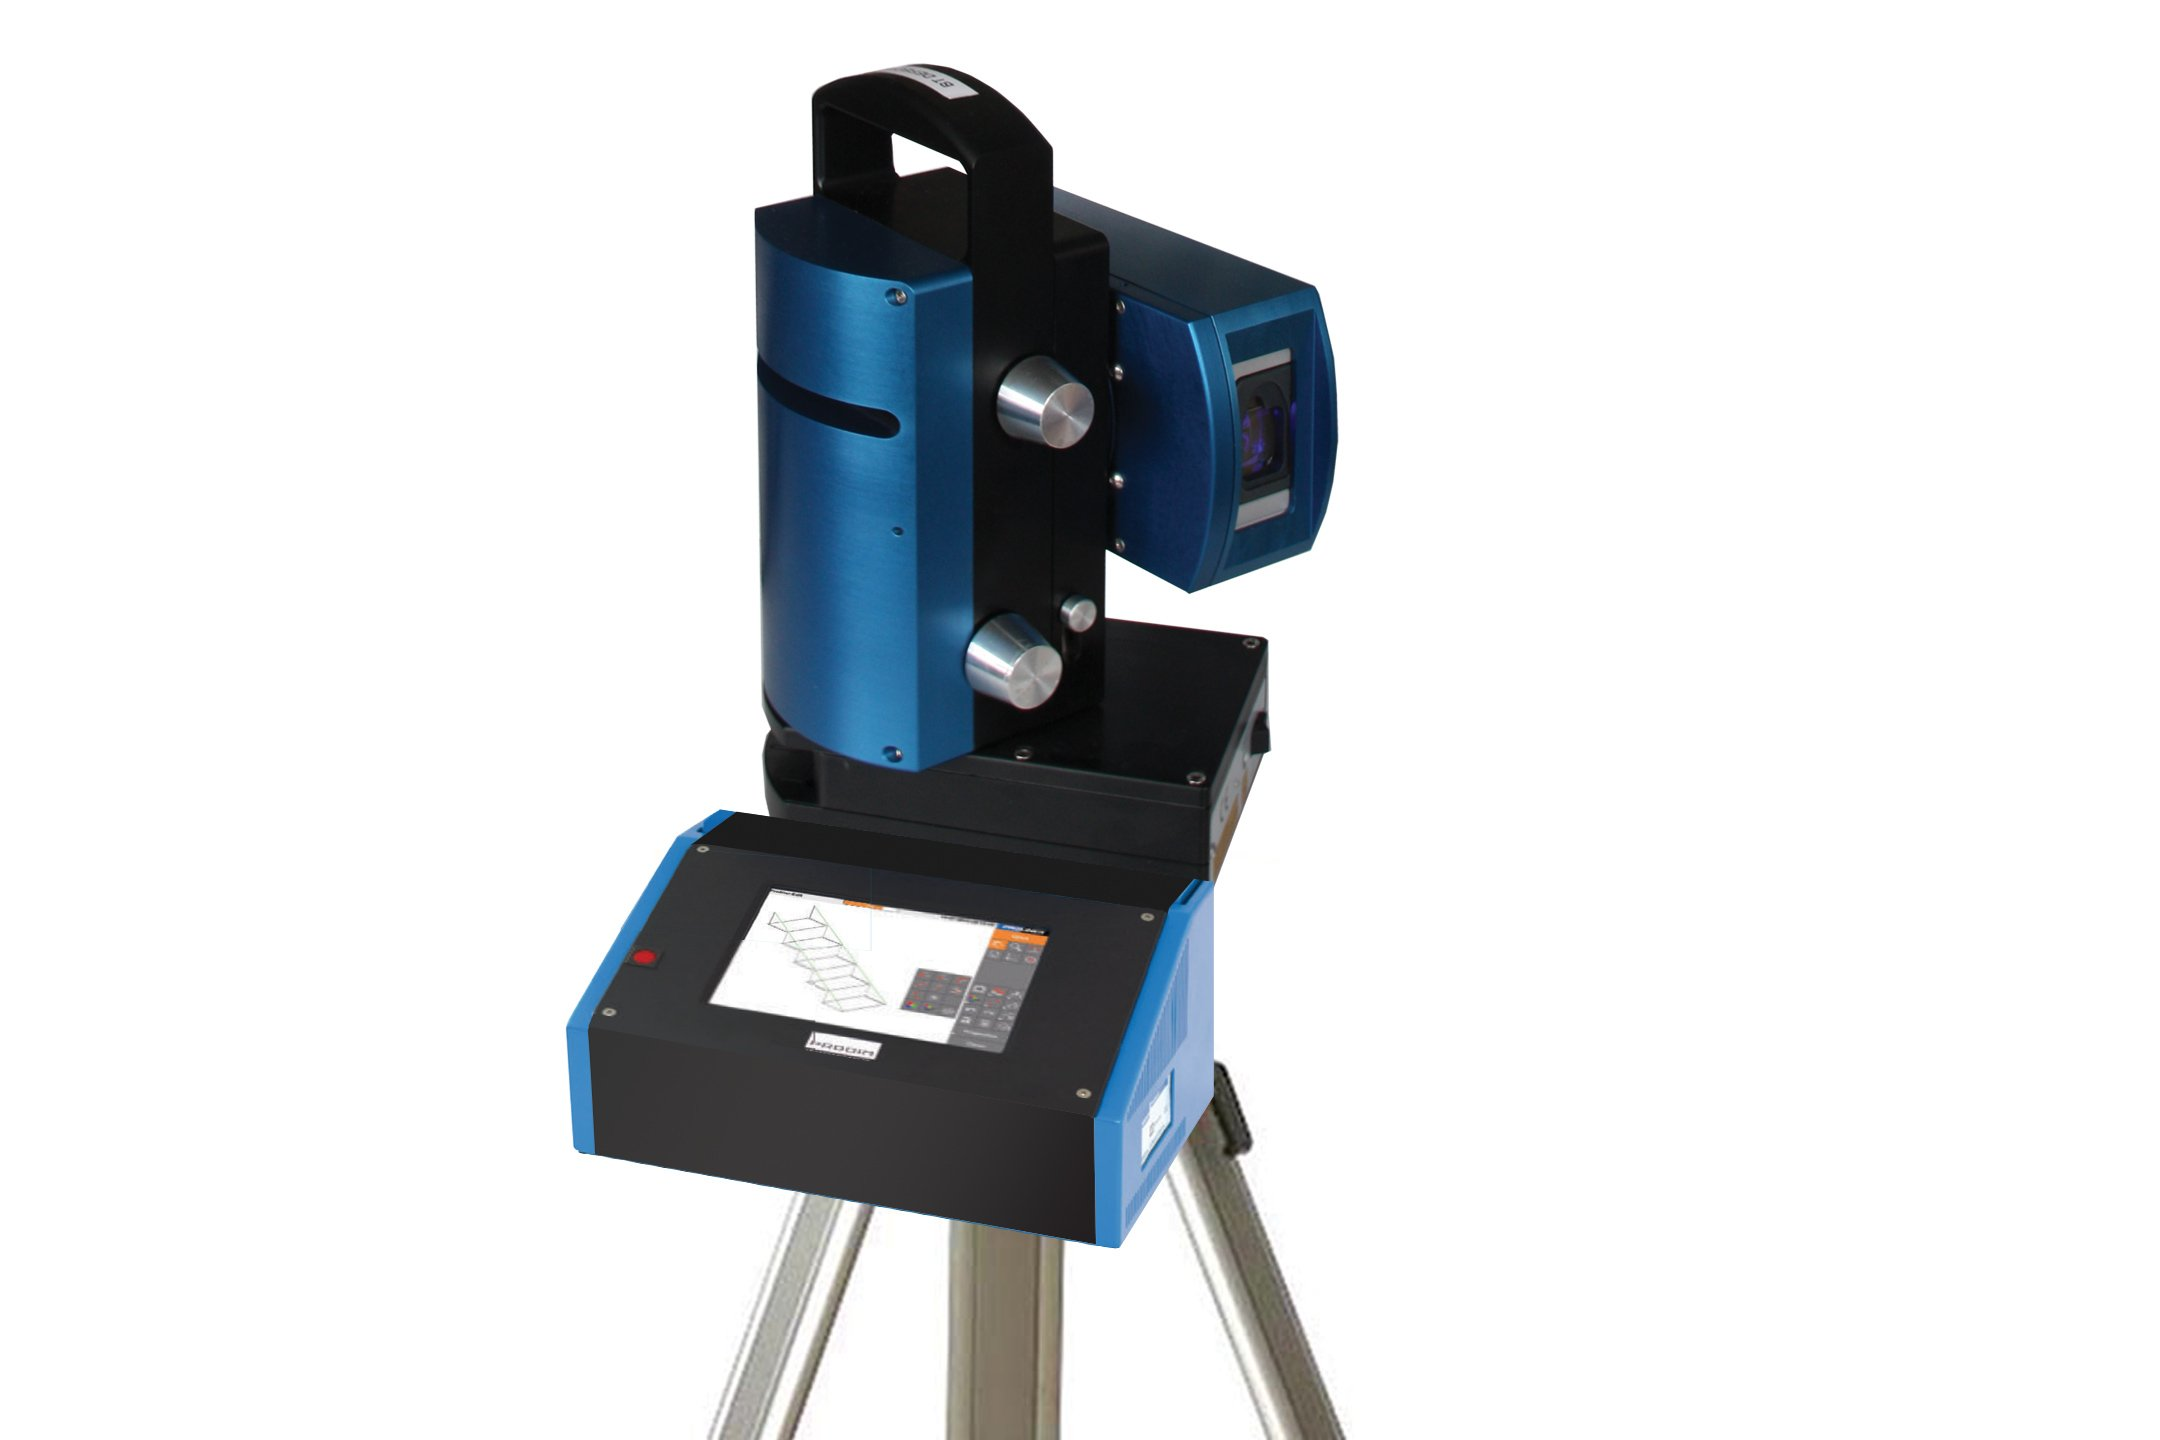 Laser meetinstrument